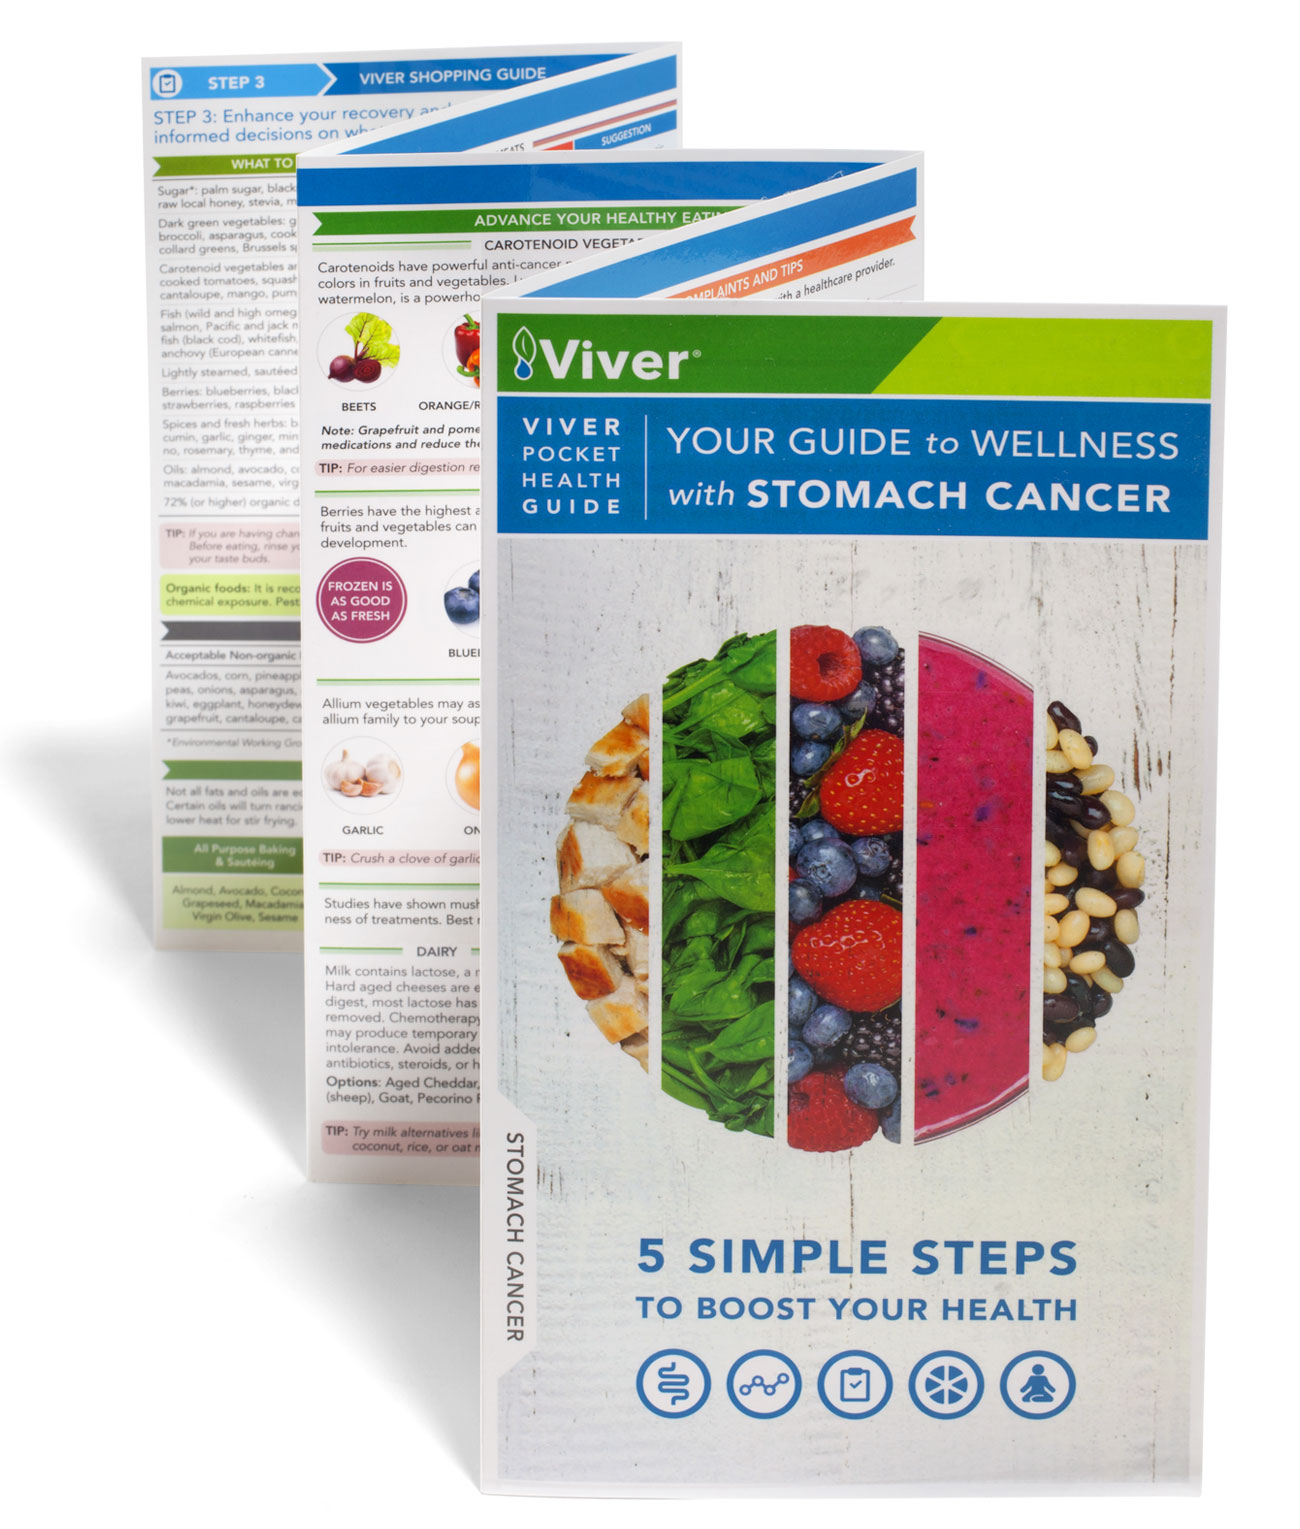 Your Guide to Wellness with Stomach Cancer is supported by Lilly USA and free for patients and care givers